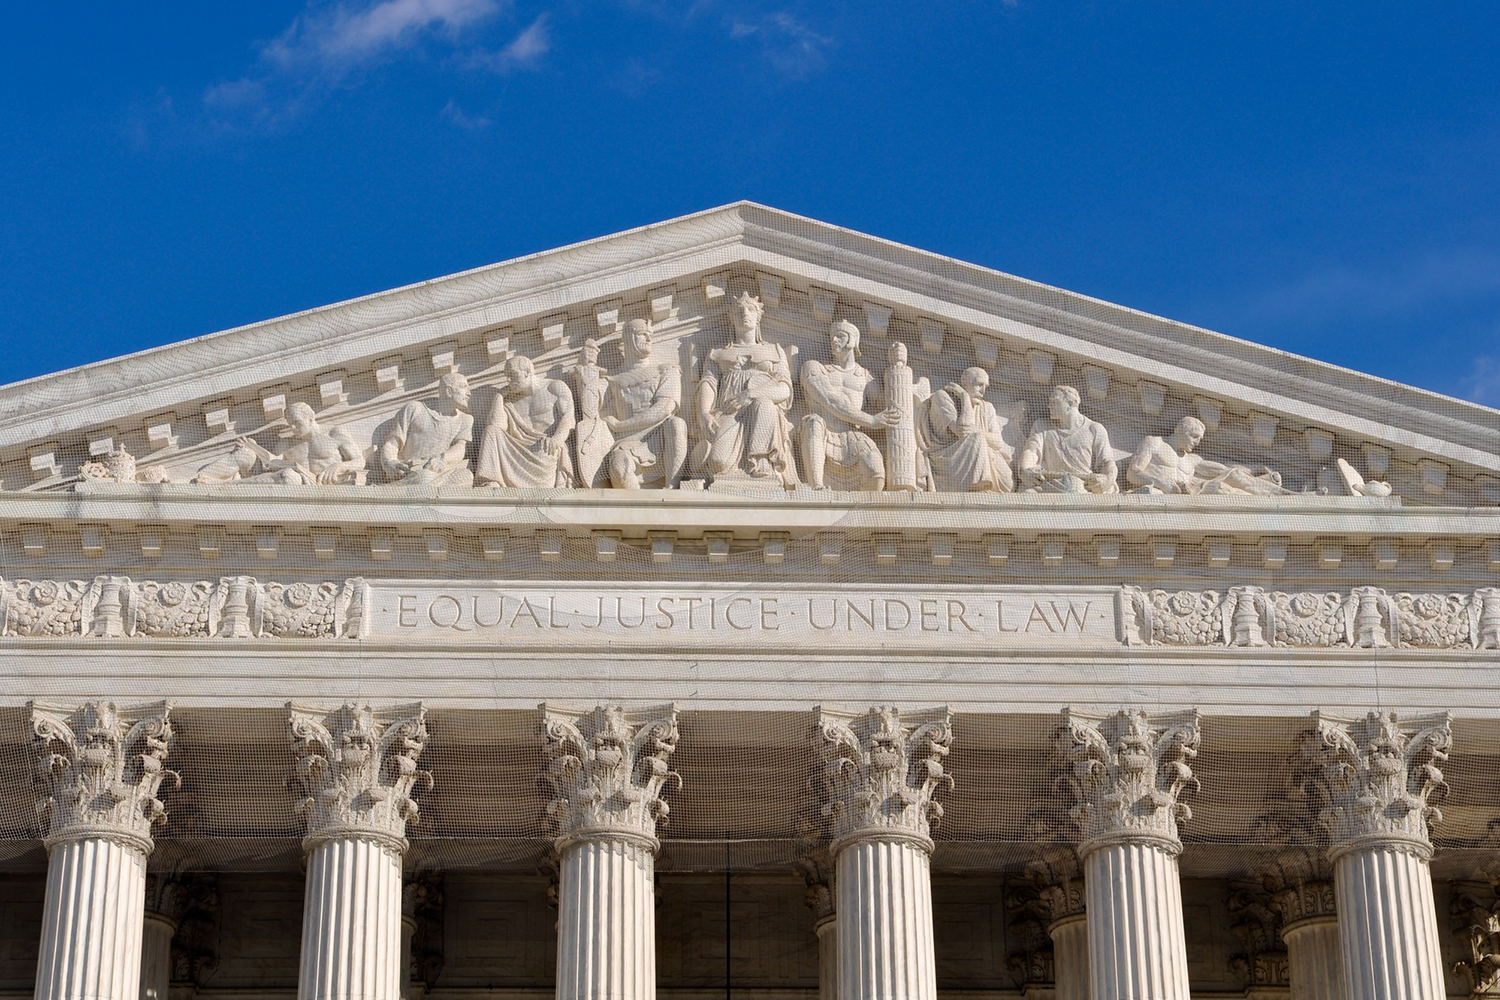 U.S. Supreme Court frieze